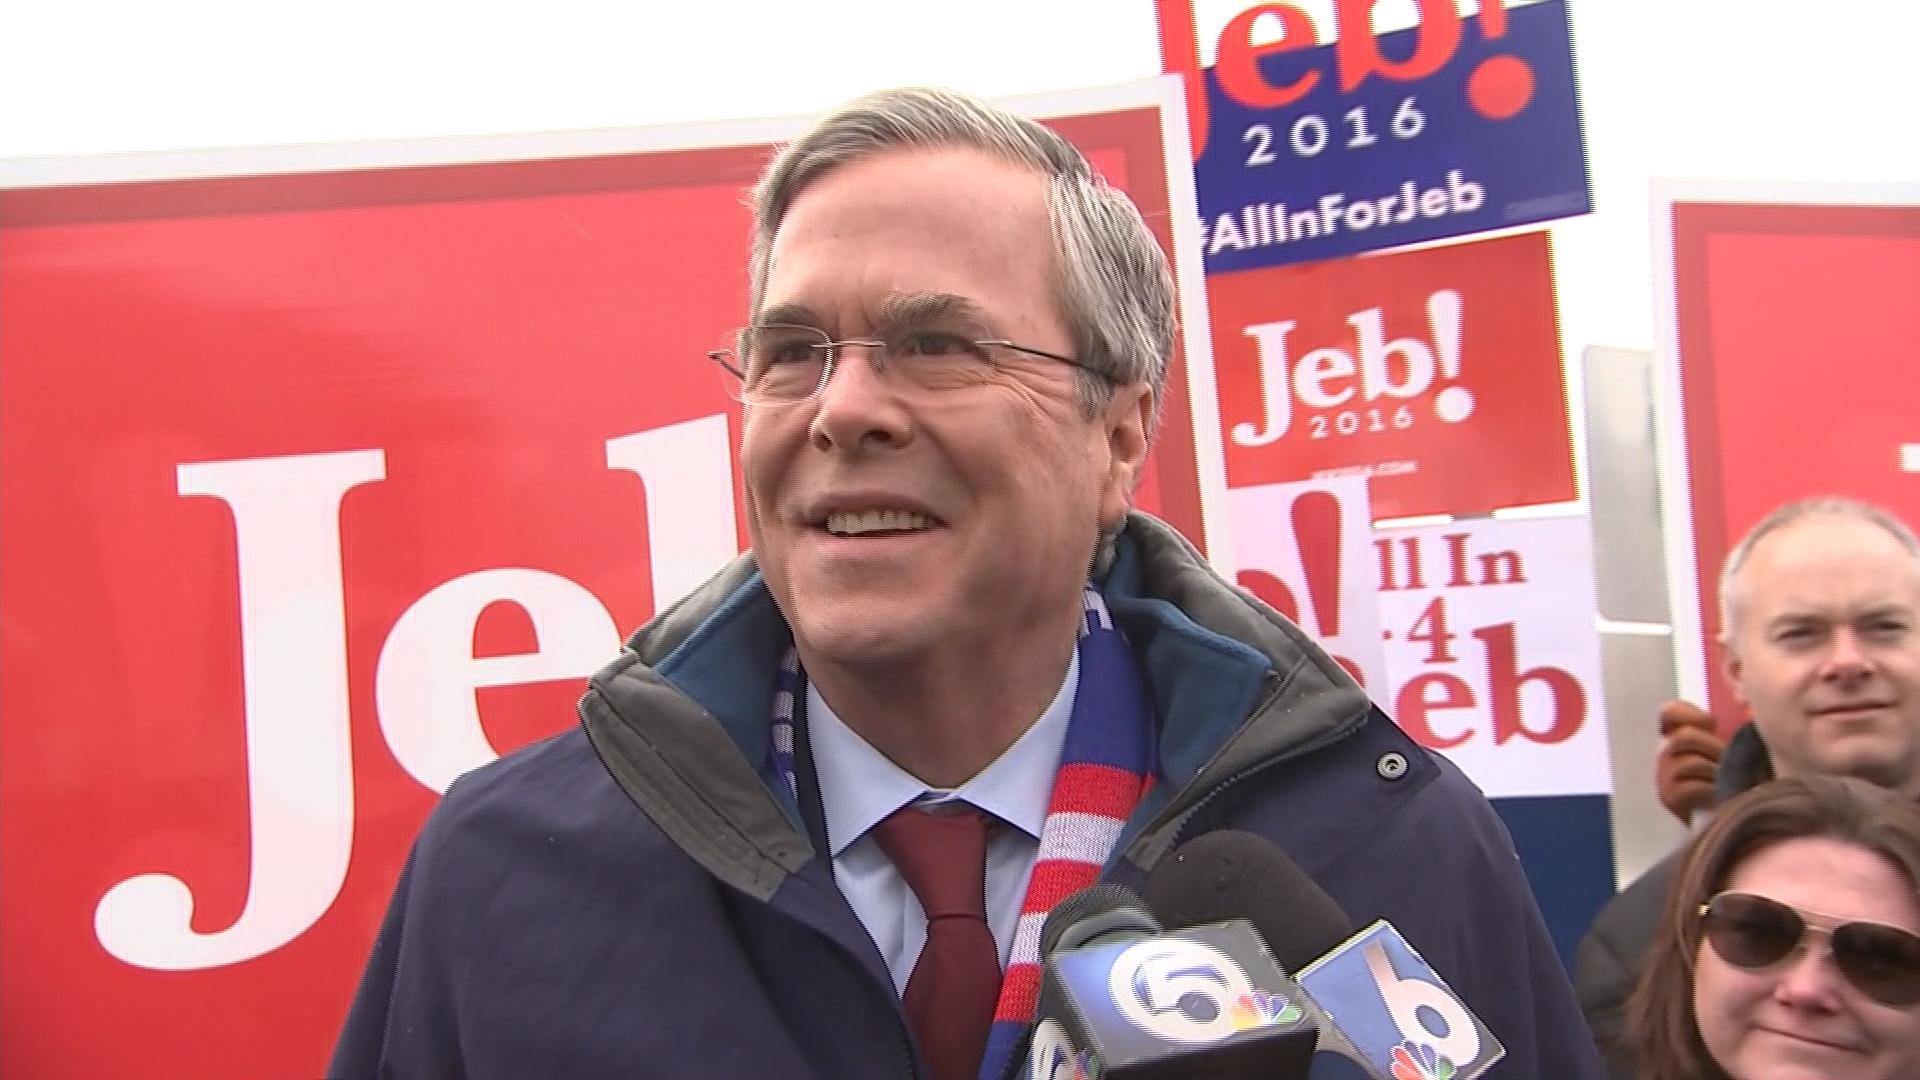 Candidates flock to NH polls for final push